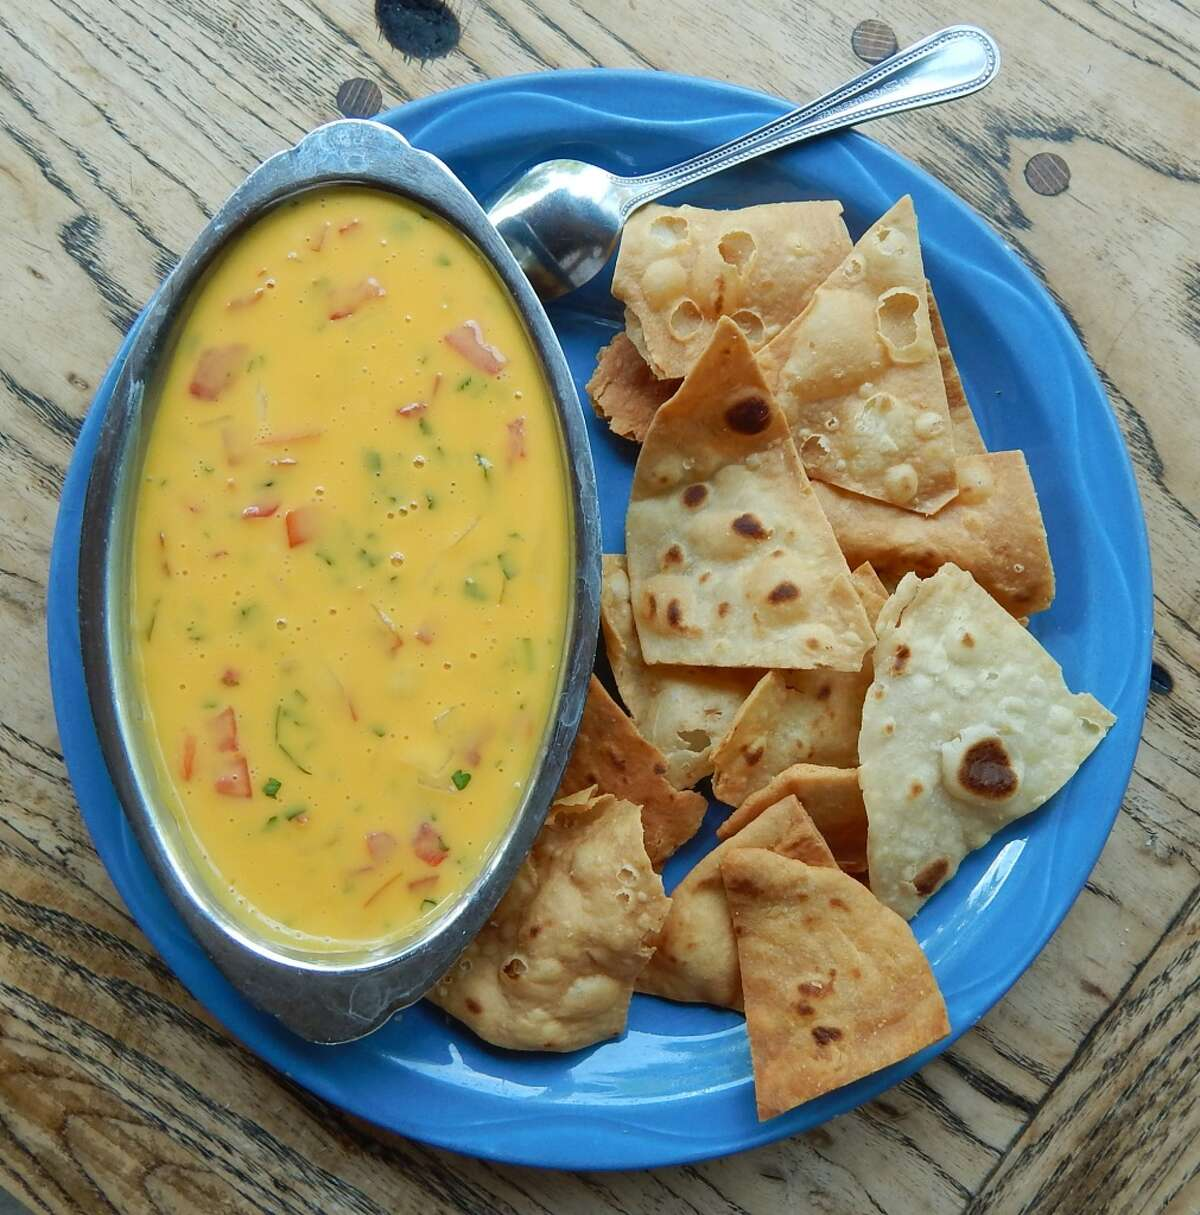 3) Chile con queso If you live anywhere in the south you know how essential this dip it. Not to worry though it really only takes some Velveeta, a can of Rotell and a slow cooker. Unless of course you want to get all fancy with your cheese dip.